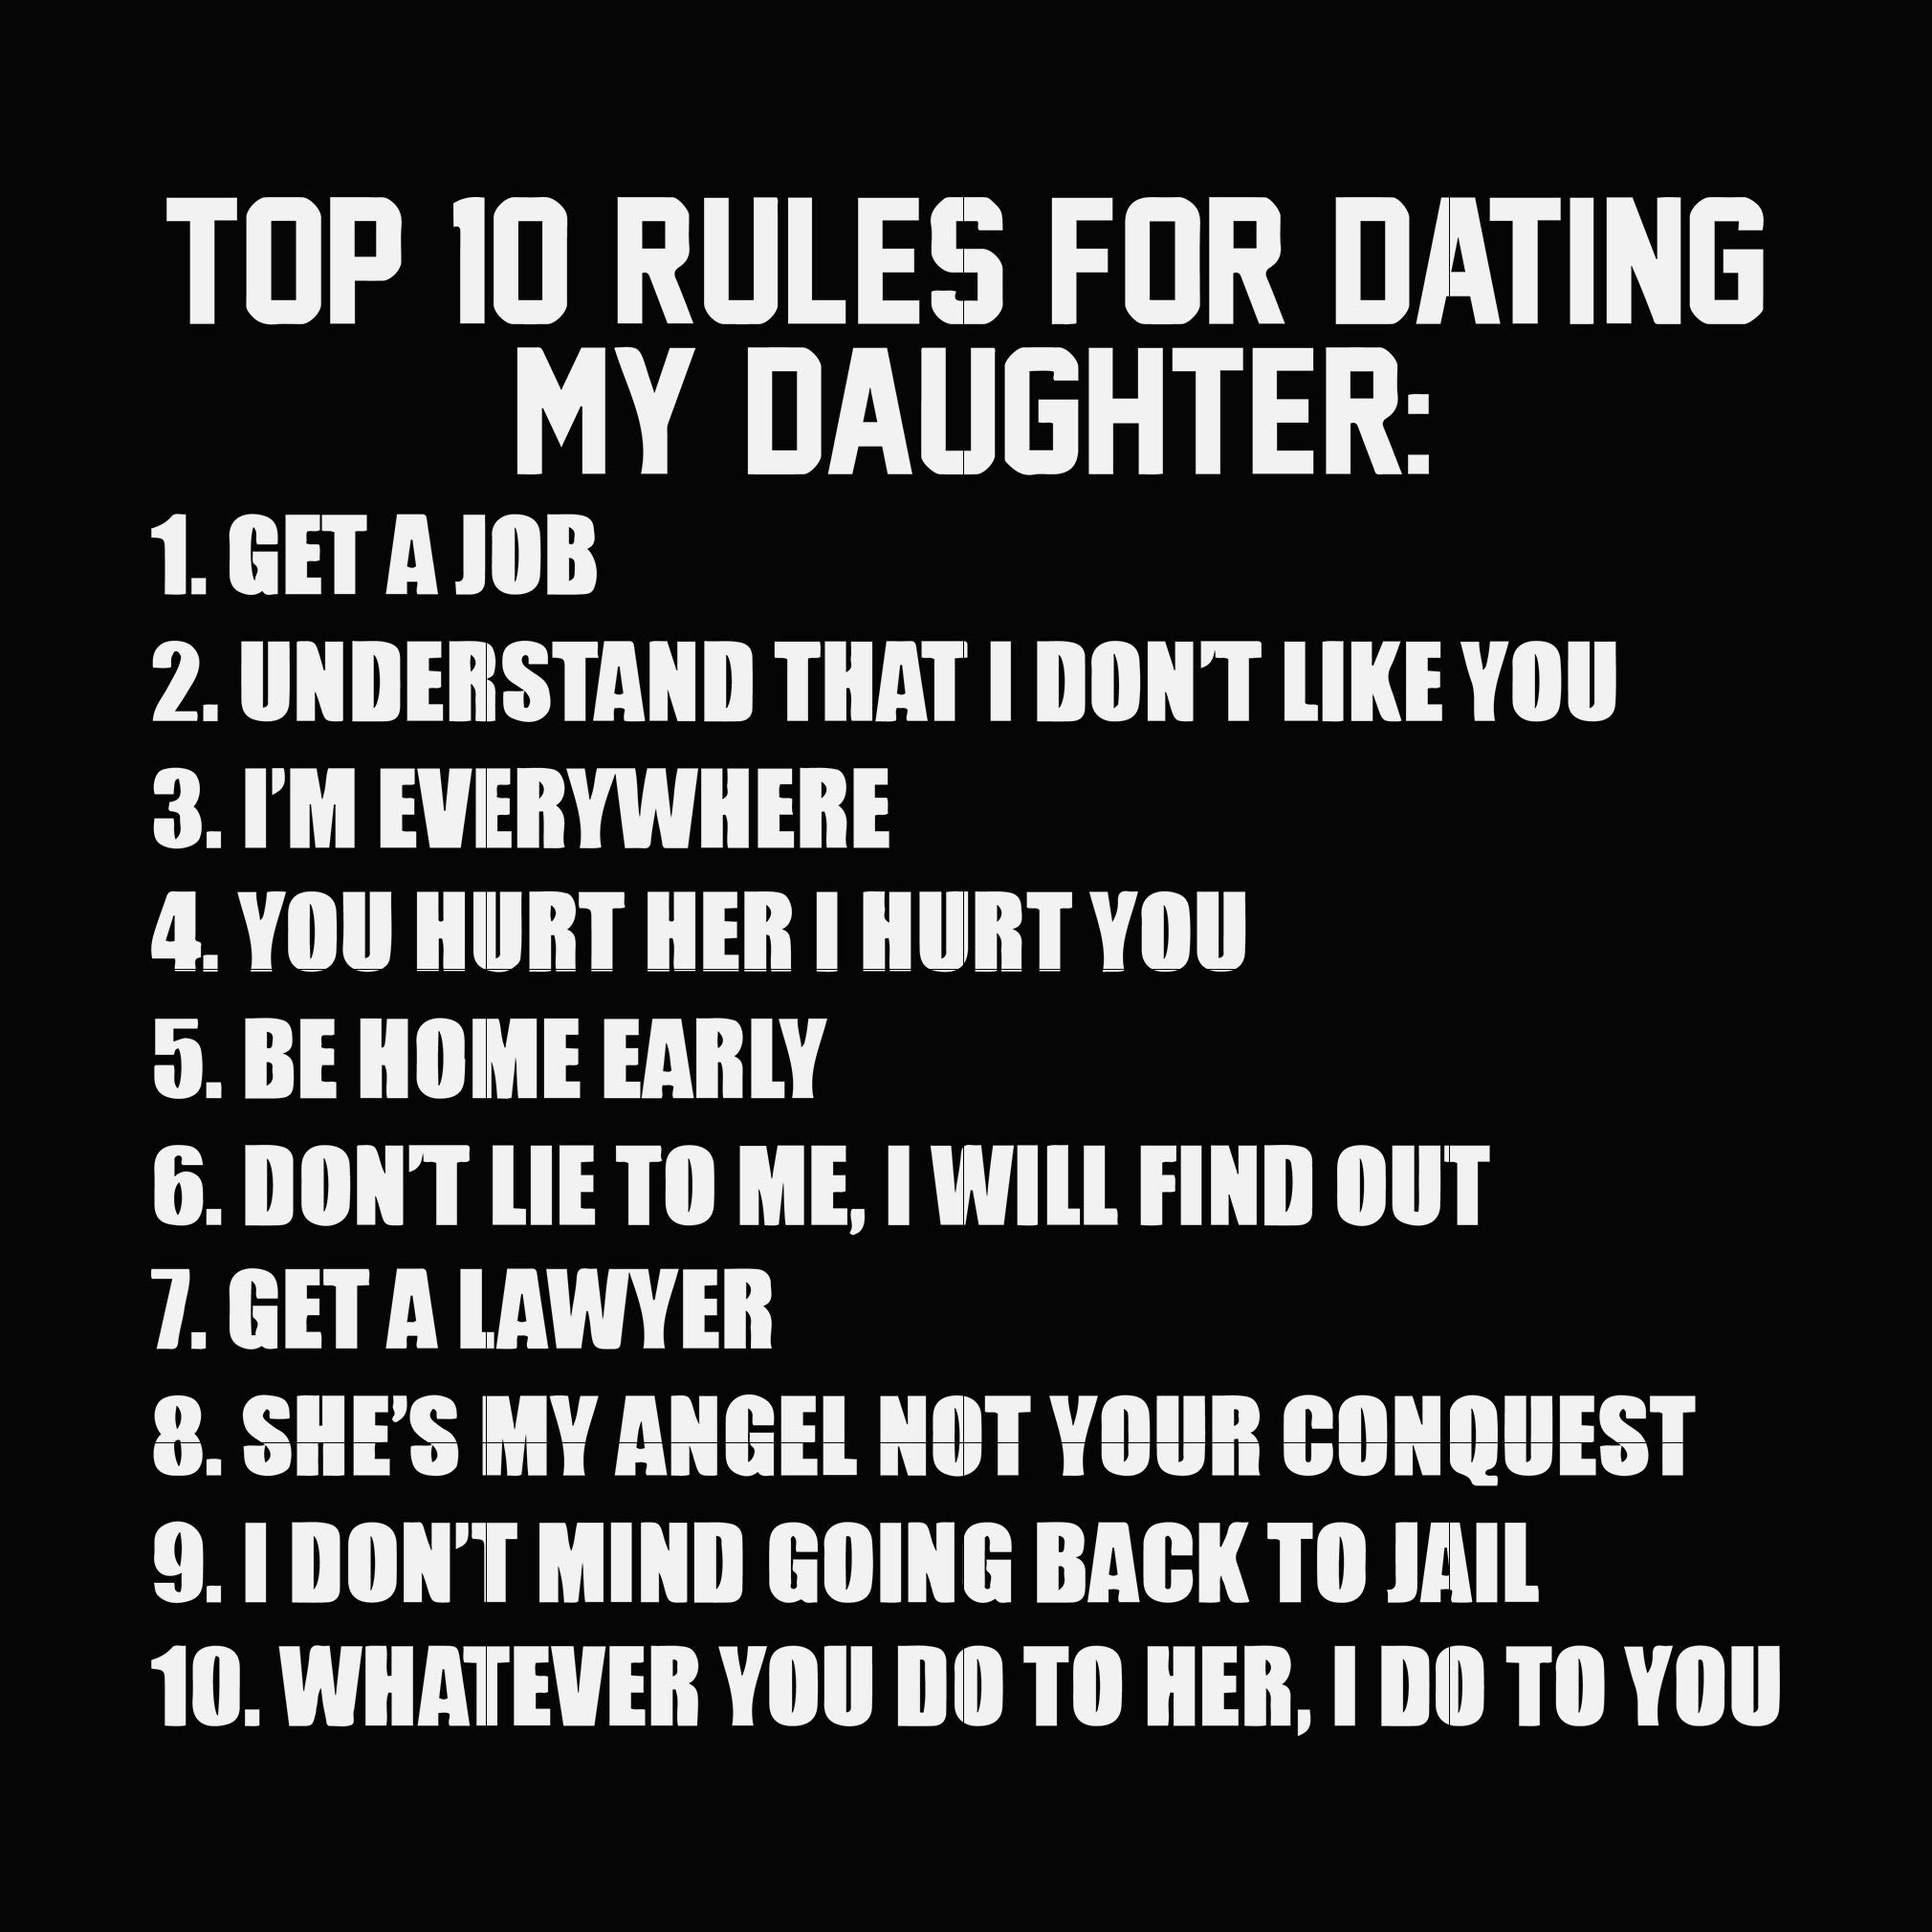 Top 10 rules for dating my daughter svg ,dxf,eps,png digital file